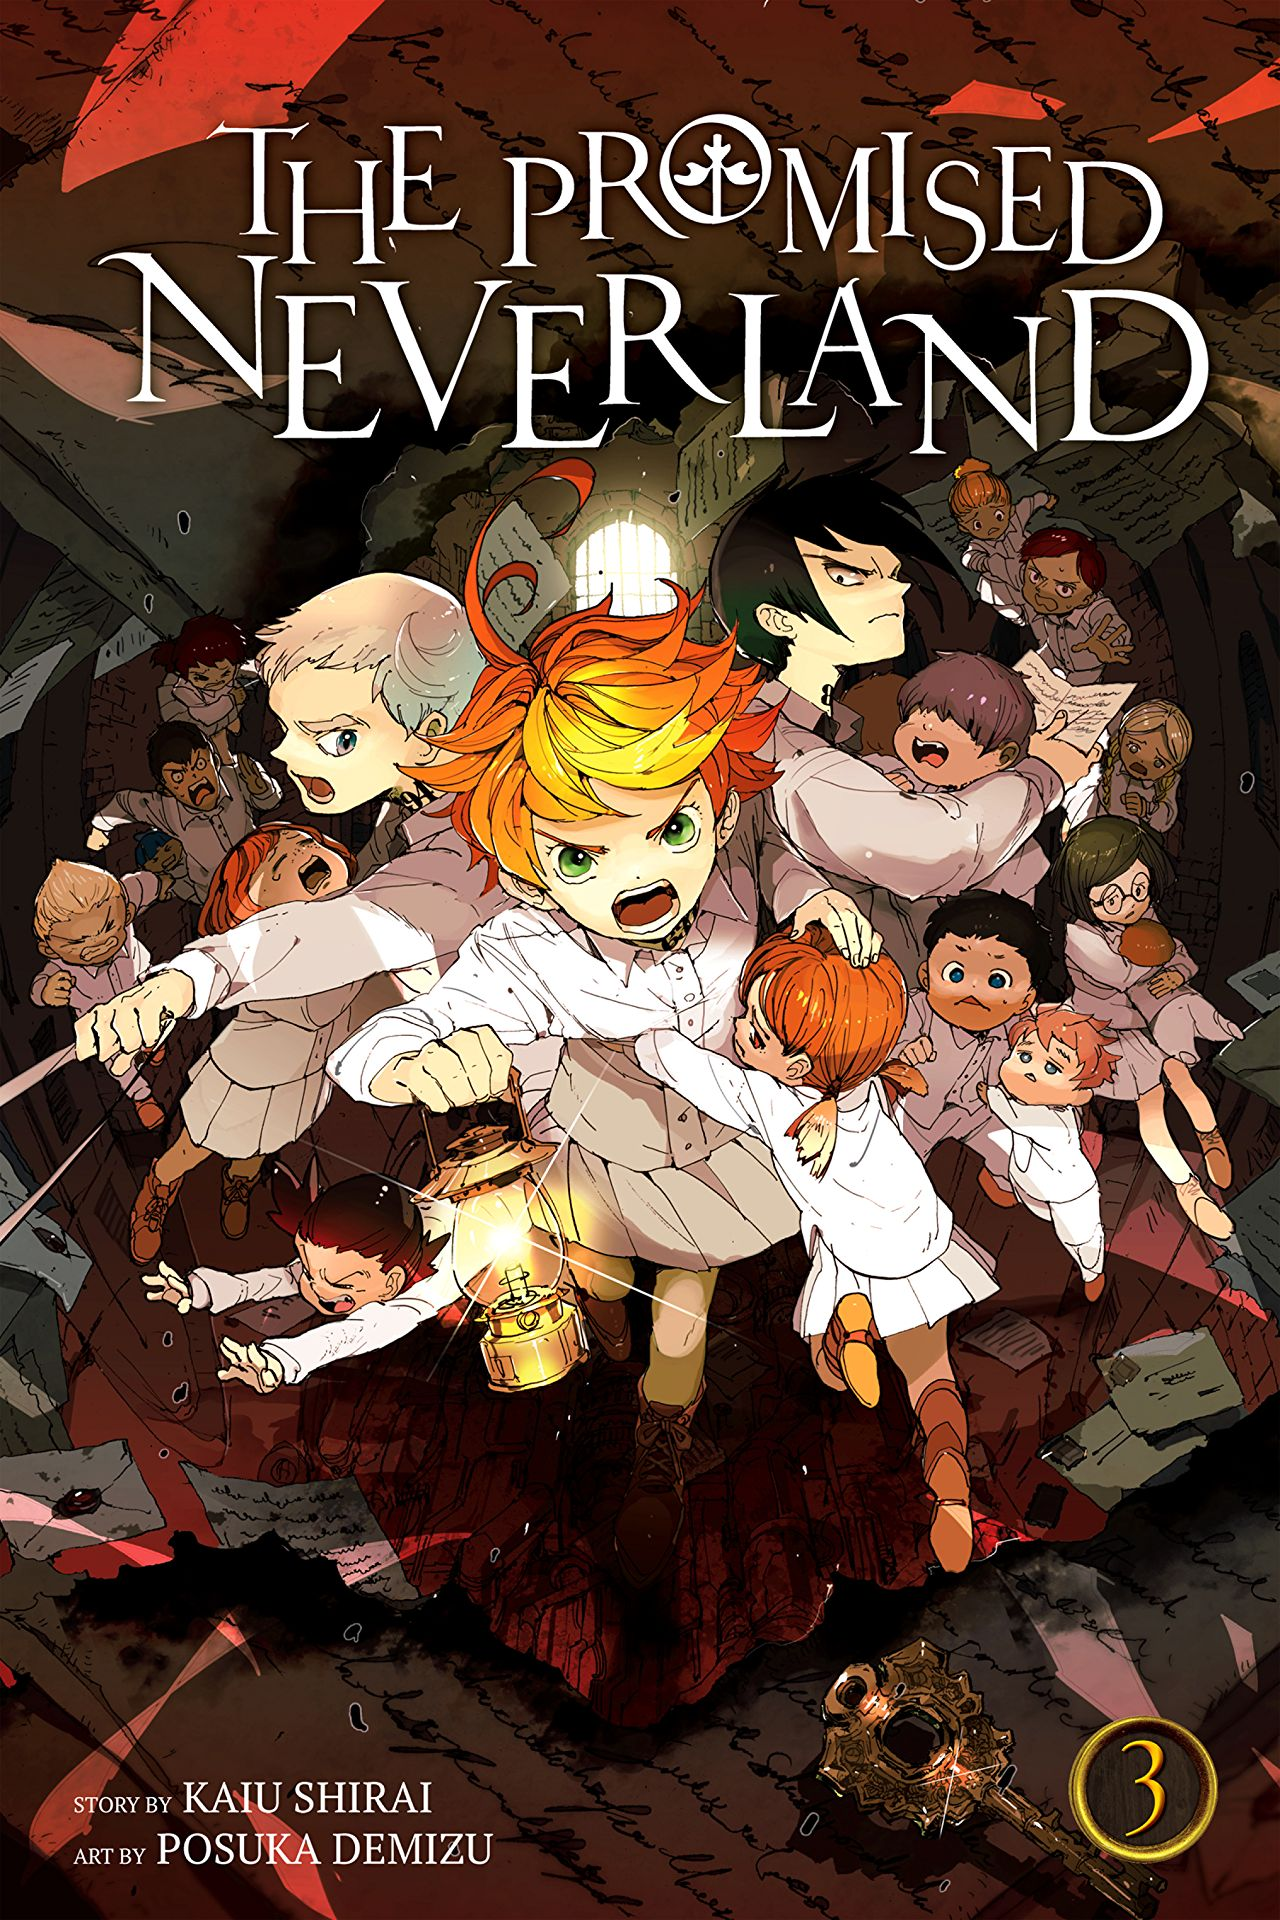 The Promised Neverland Vol. 3 Review